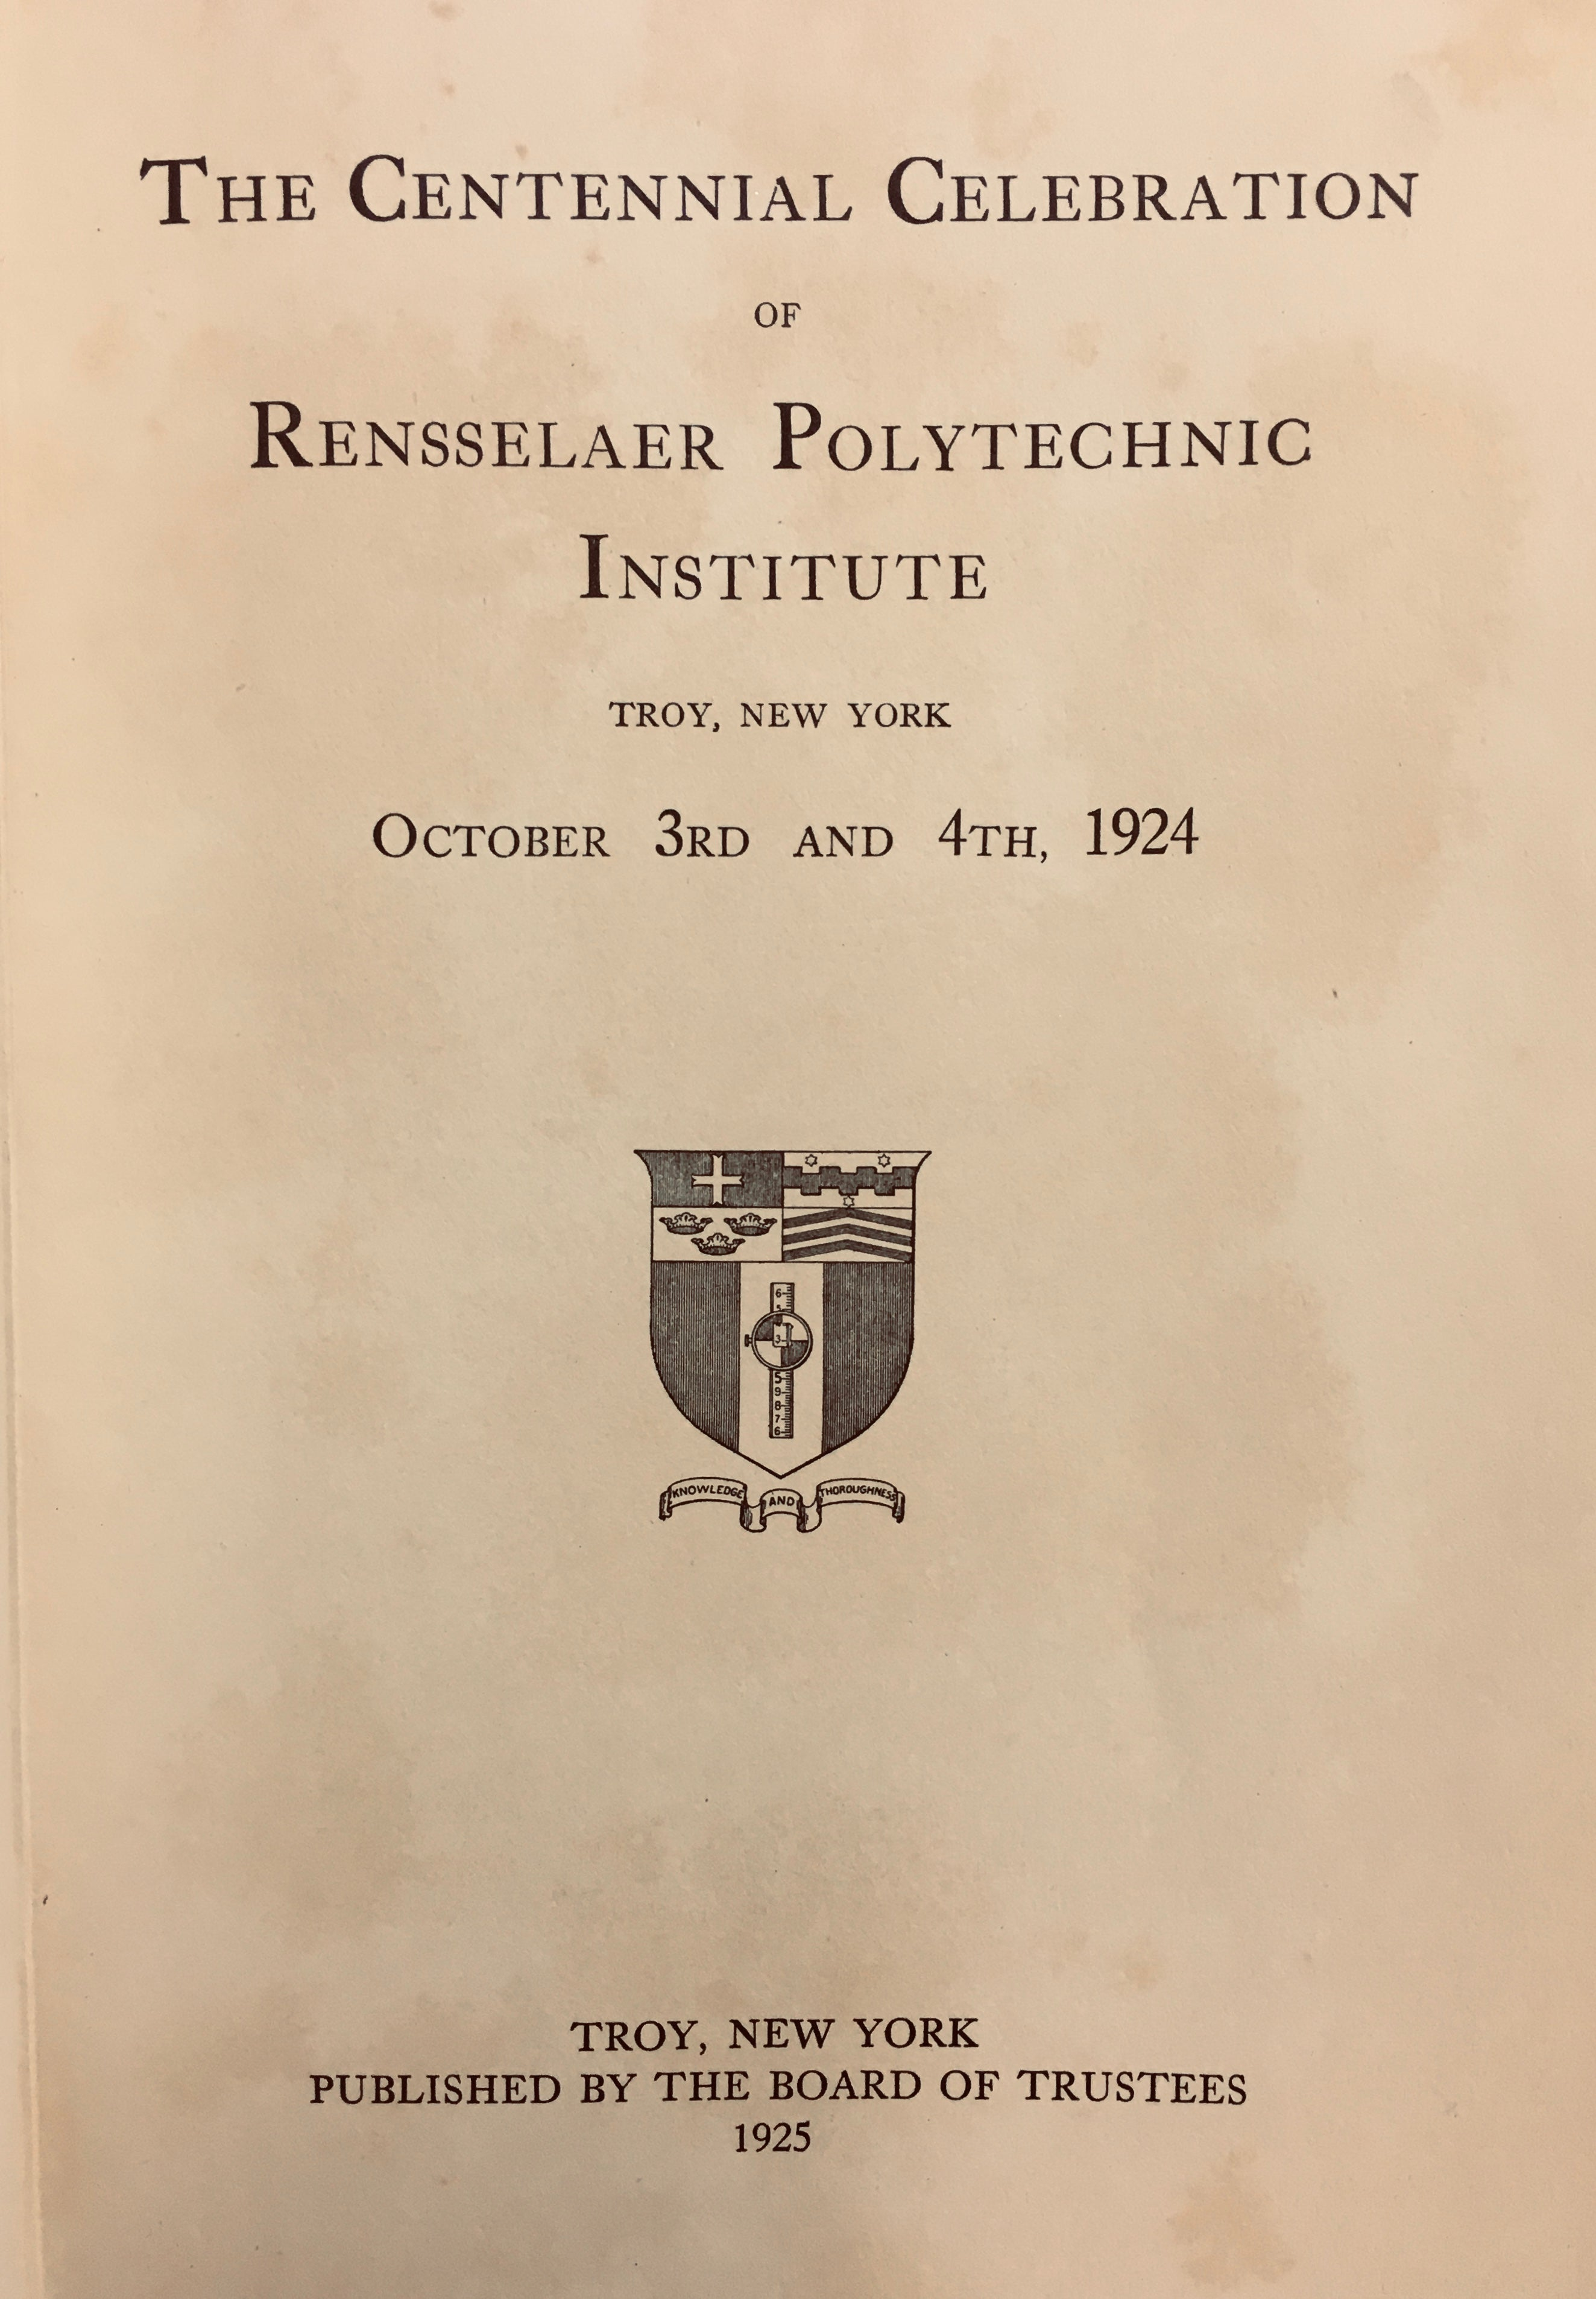 Cover of the book, The Centennial Celebration of Rensselaer Polytechnic Institute, 1924